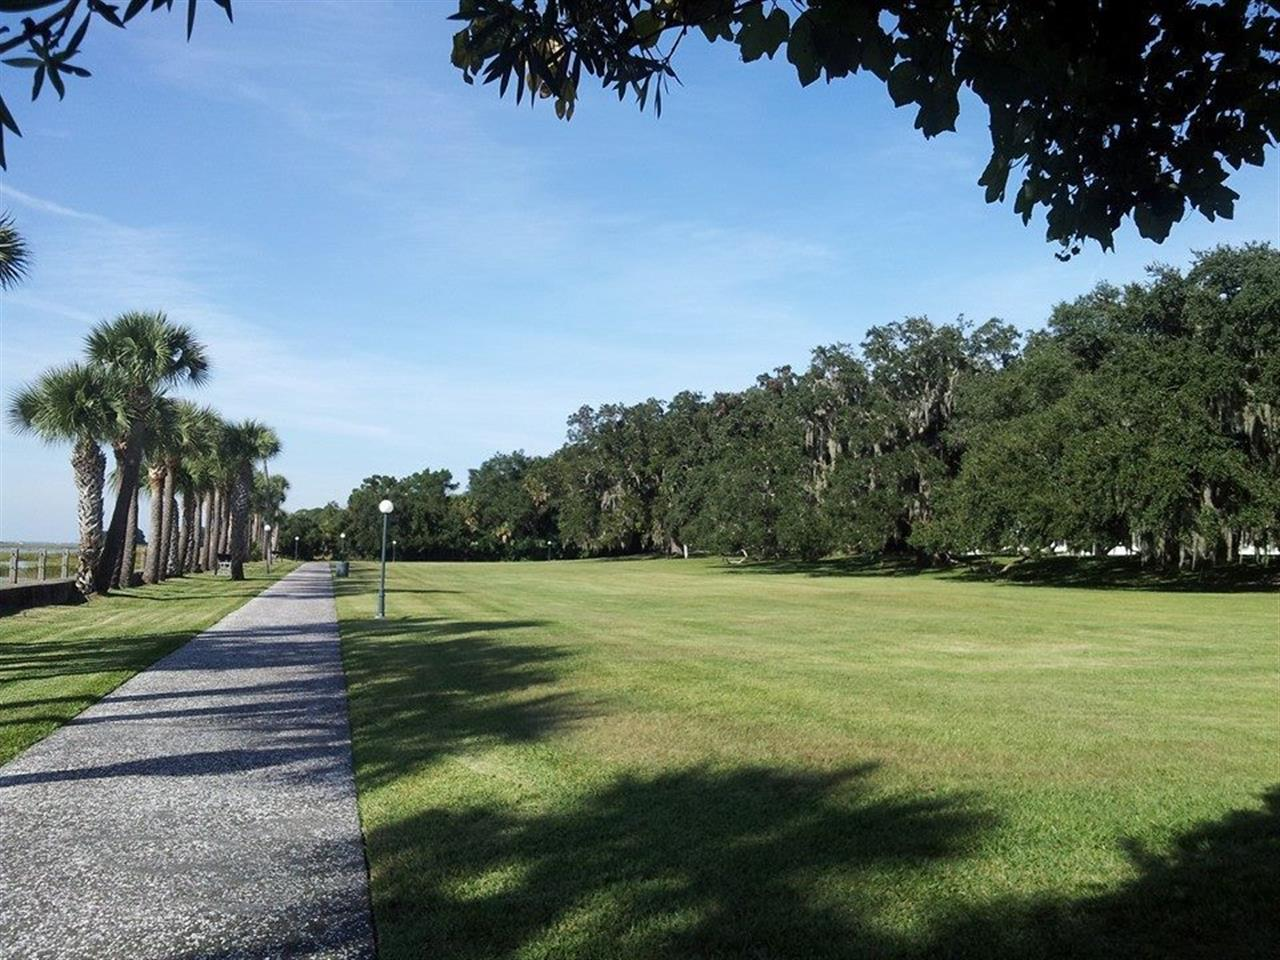 Waterfront sidewalk and lawns from the Jekyll Island Club Hotel.